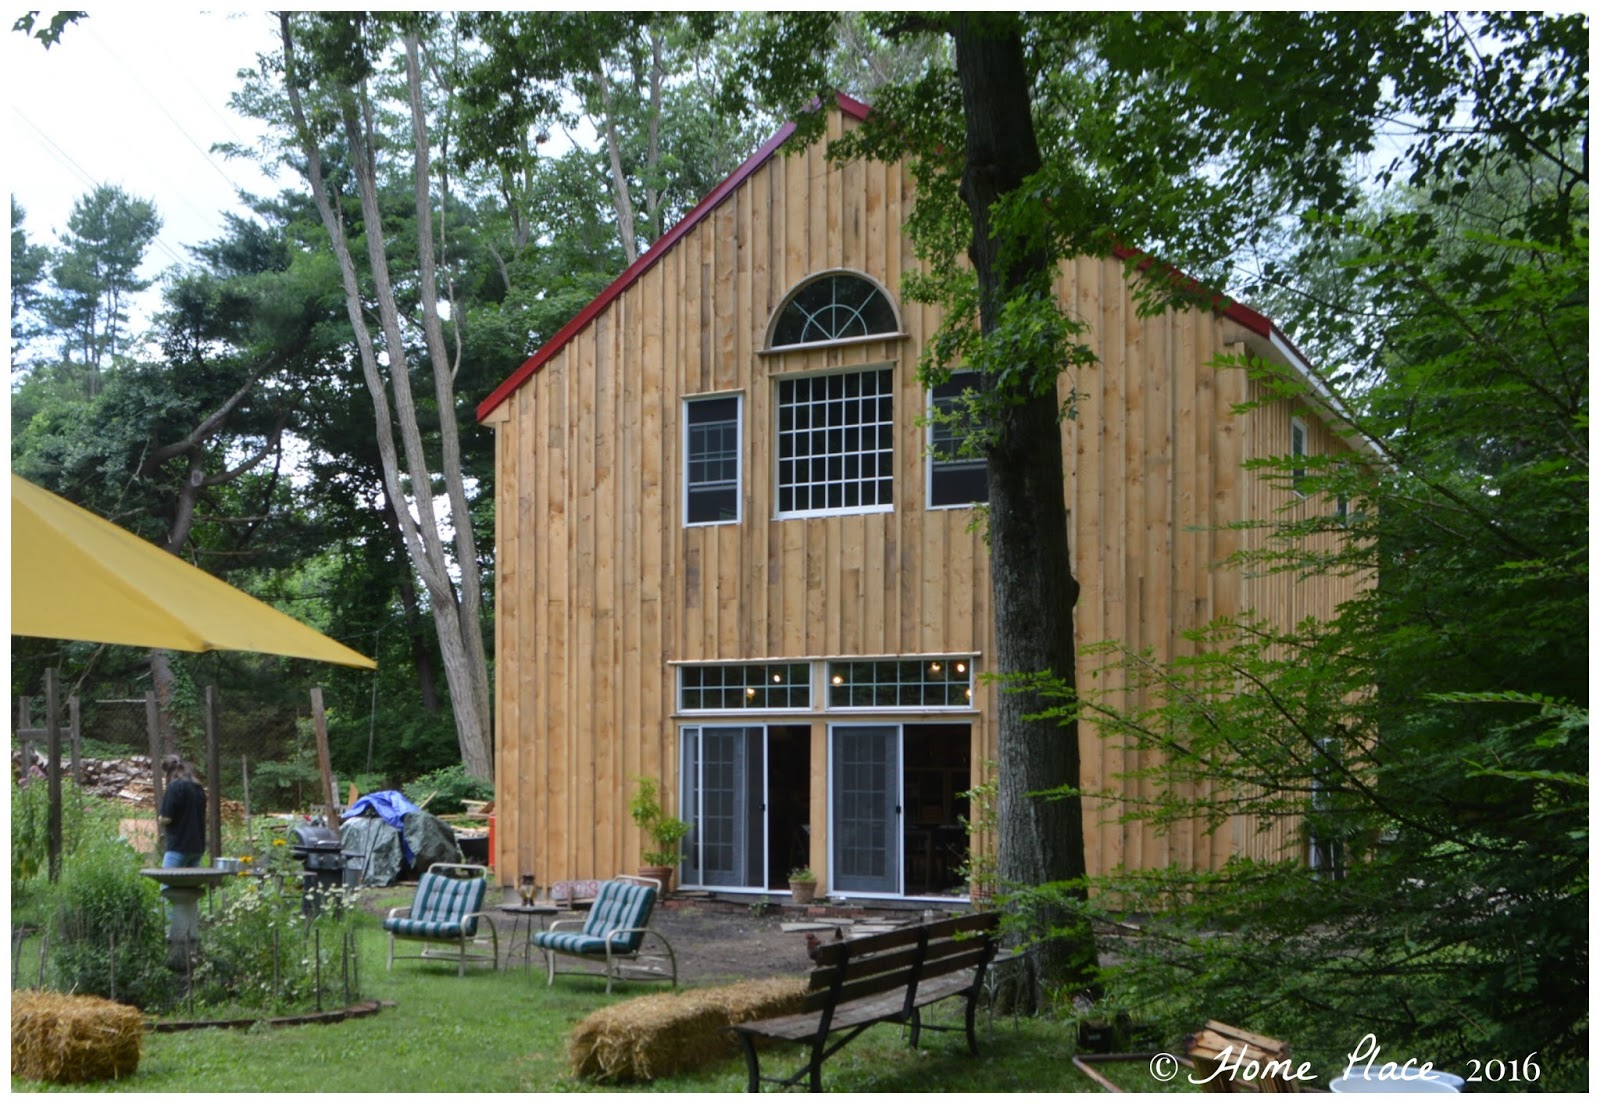 Home Place The New Red Bee Honey Barn In Weston Ct